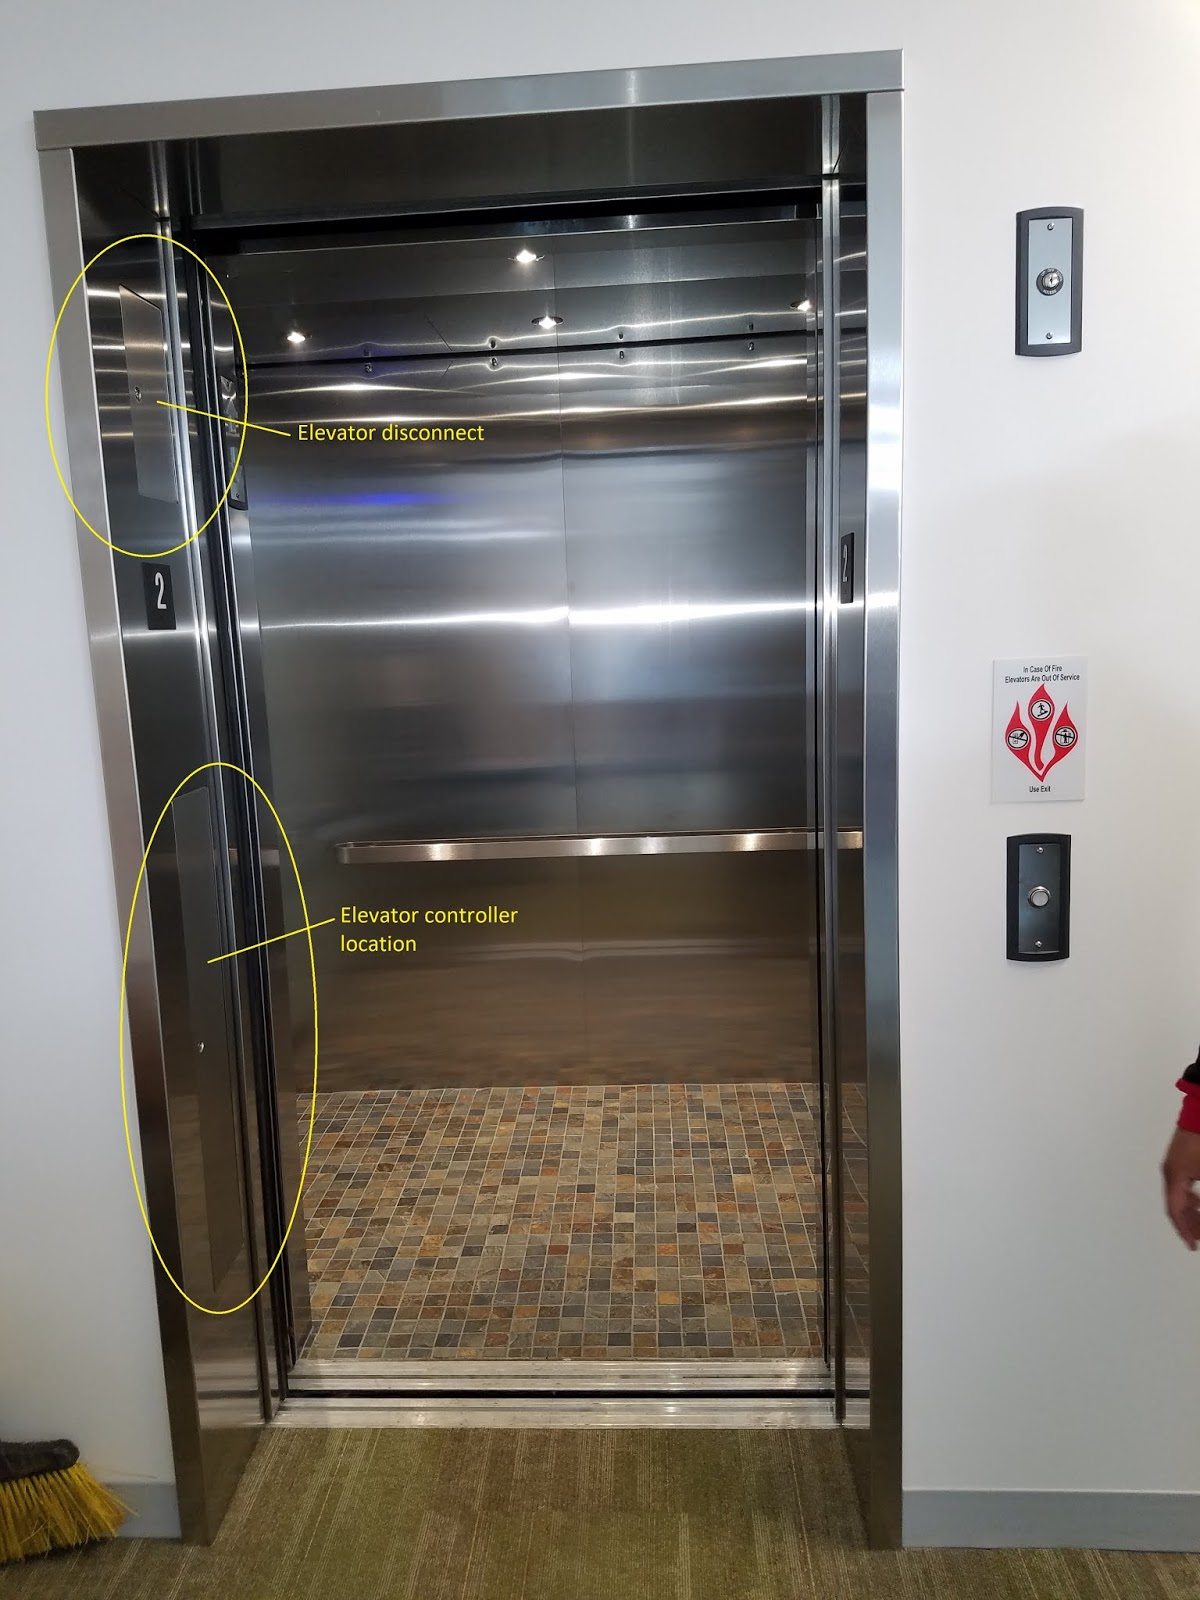 [Typical Elevatoru0027s Have A Machine Room Where The Controller And Mainline  Disconnect Would Be Located. This Elevator Has It In The Door Frame]